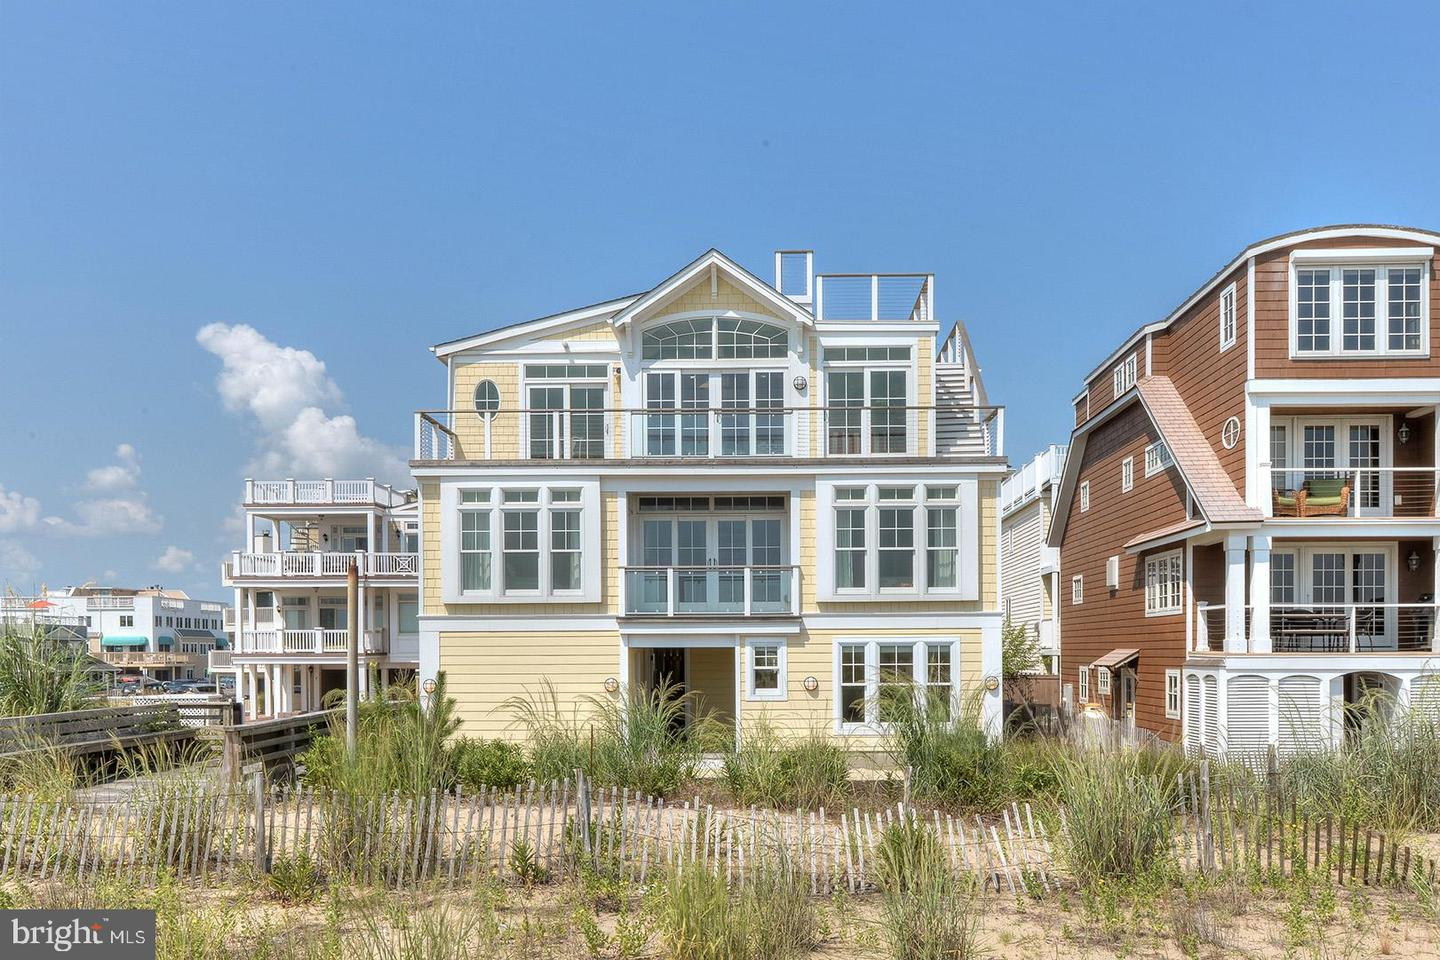 DESU100159-301987209443-2019-09-12-15-11-35 5 Clayton St | Dewey Beach, DE Real Estate For Sale | MLS# Desu100159  - David T. King Realtor